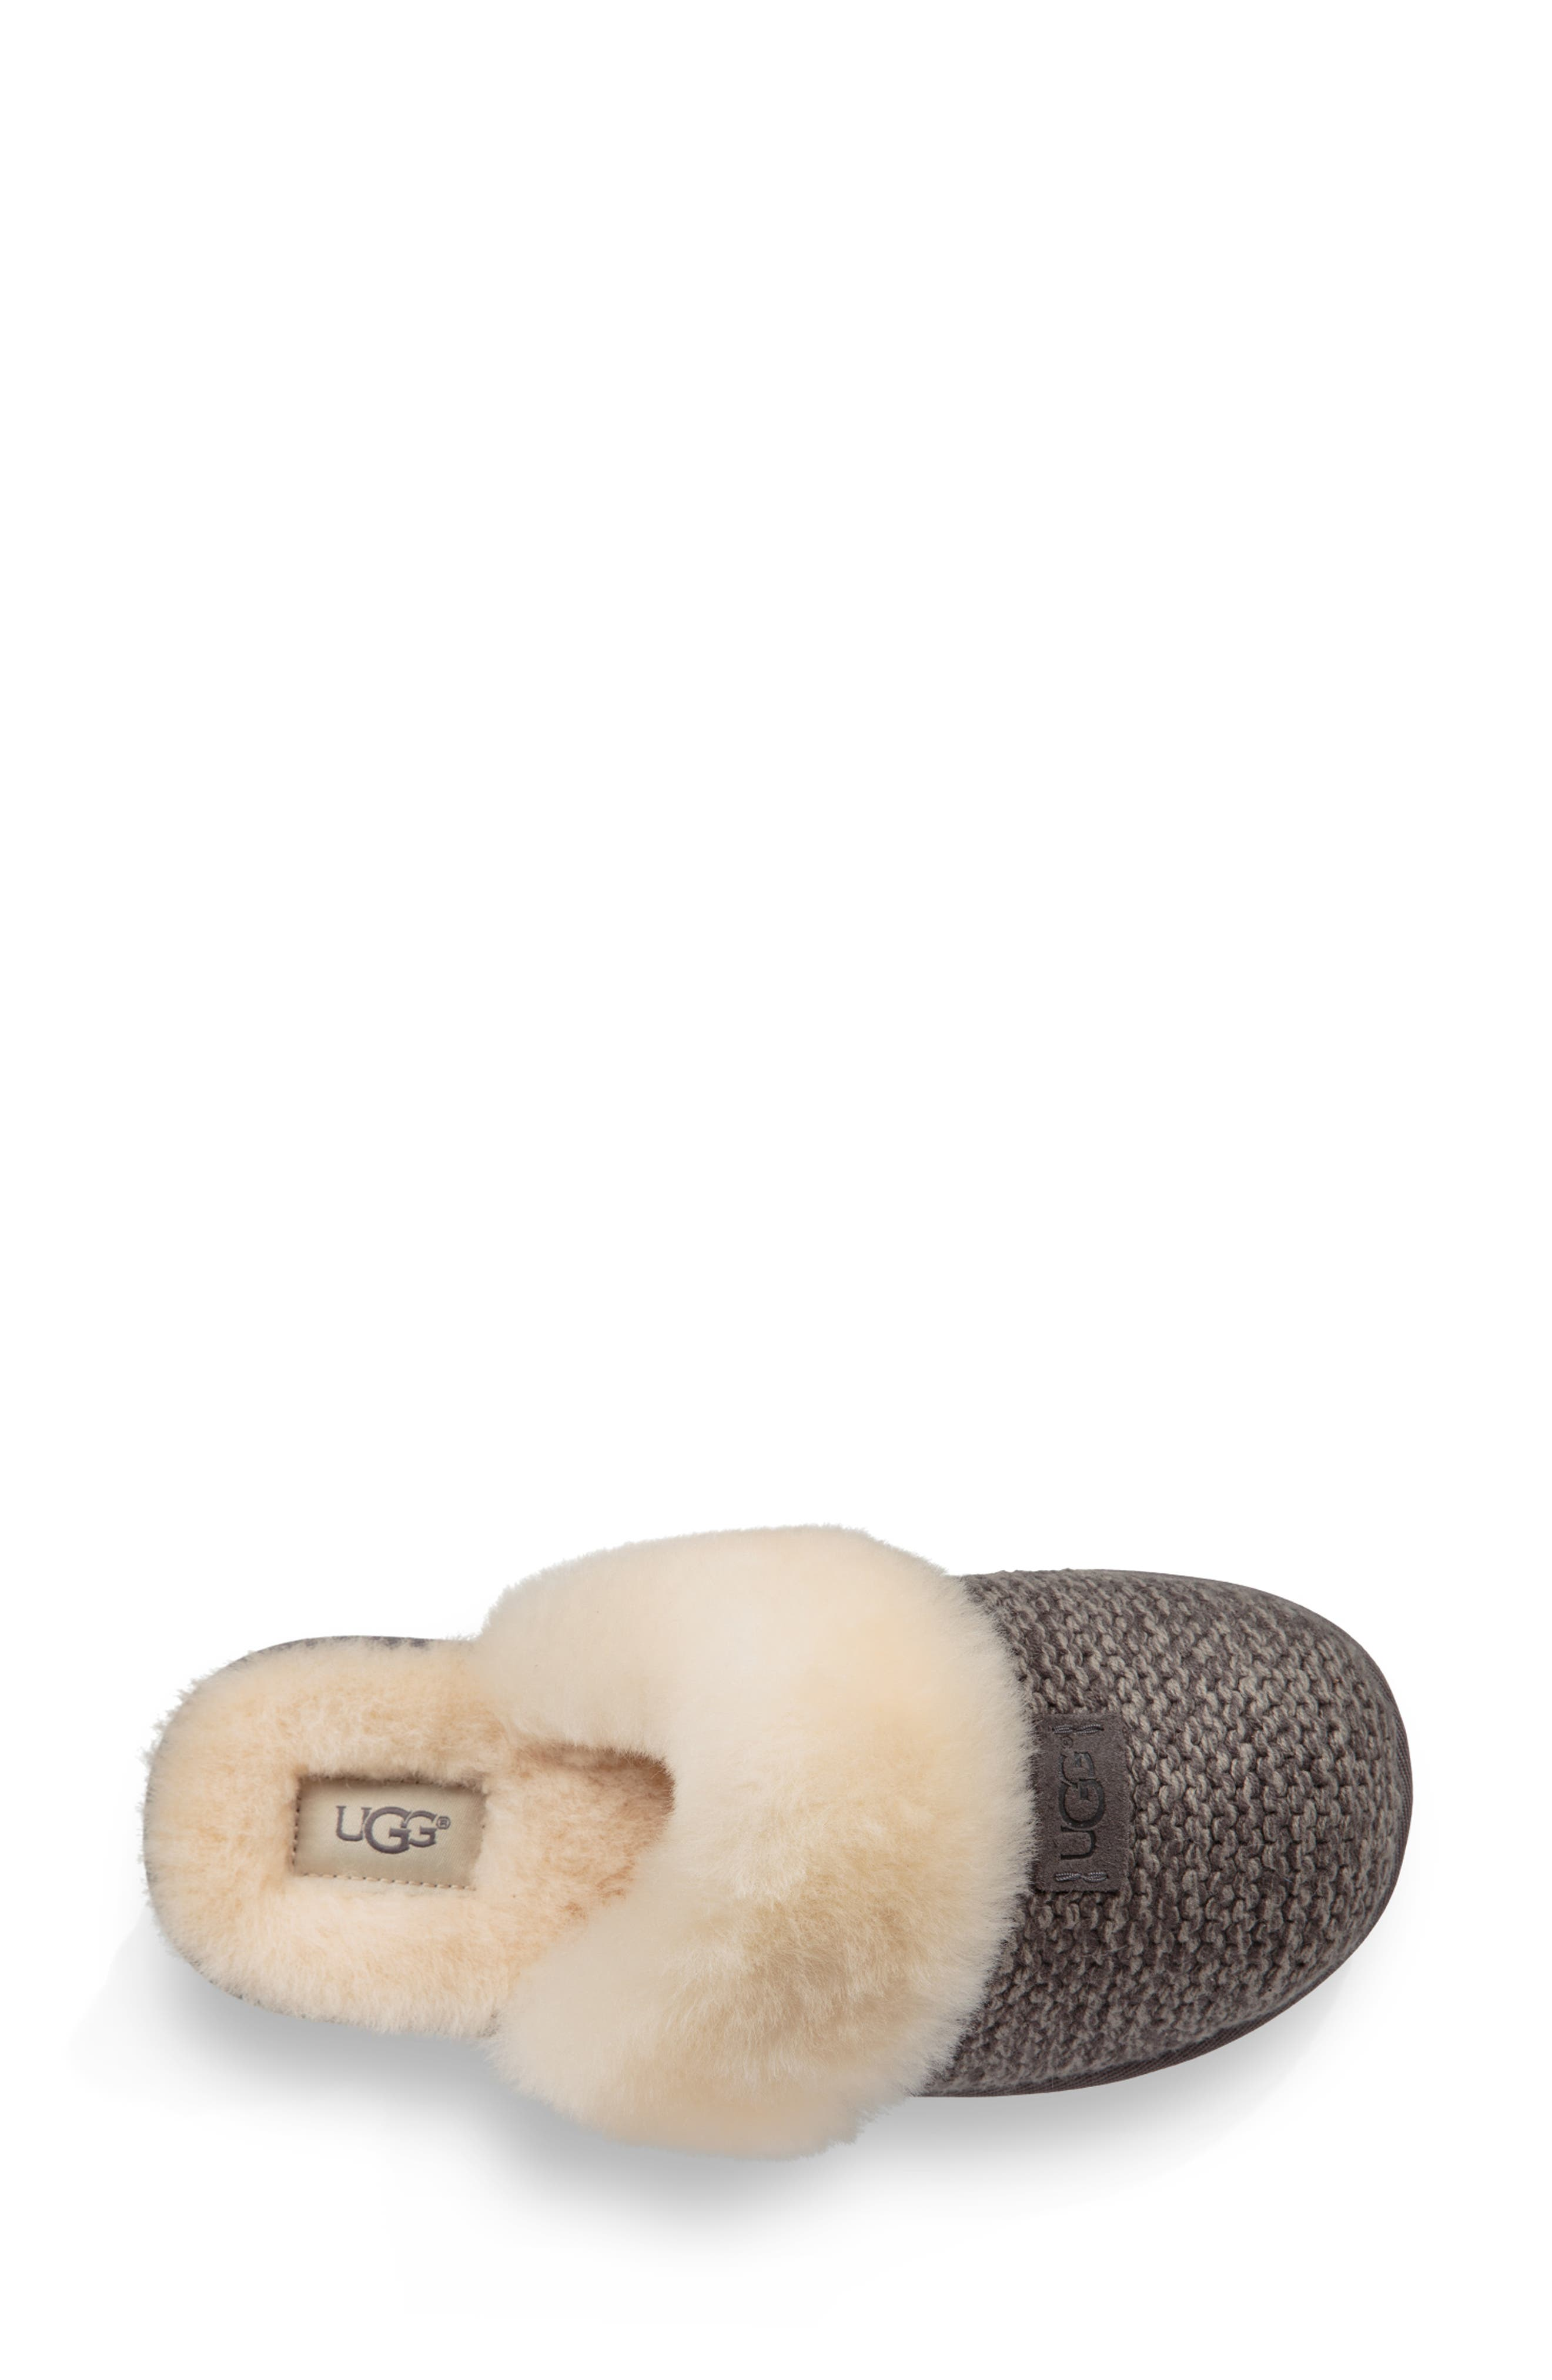 UGG<SUP>®</SUP>, Cozy Knit Genuine Shearling Slipper, Alternate thumbnail 4, color, CHARCOAL